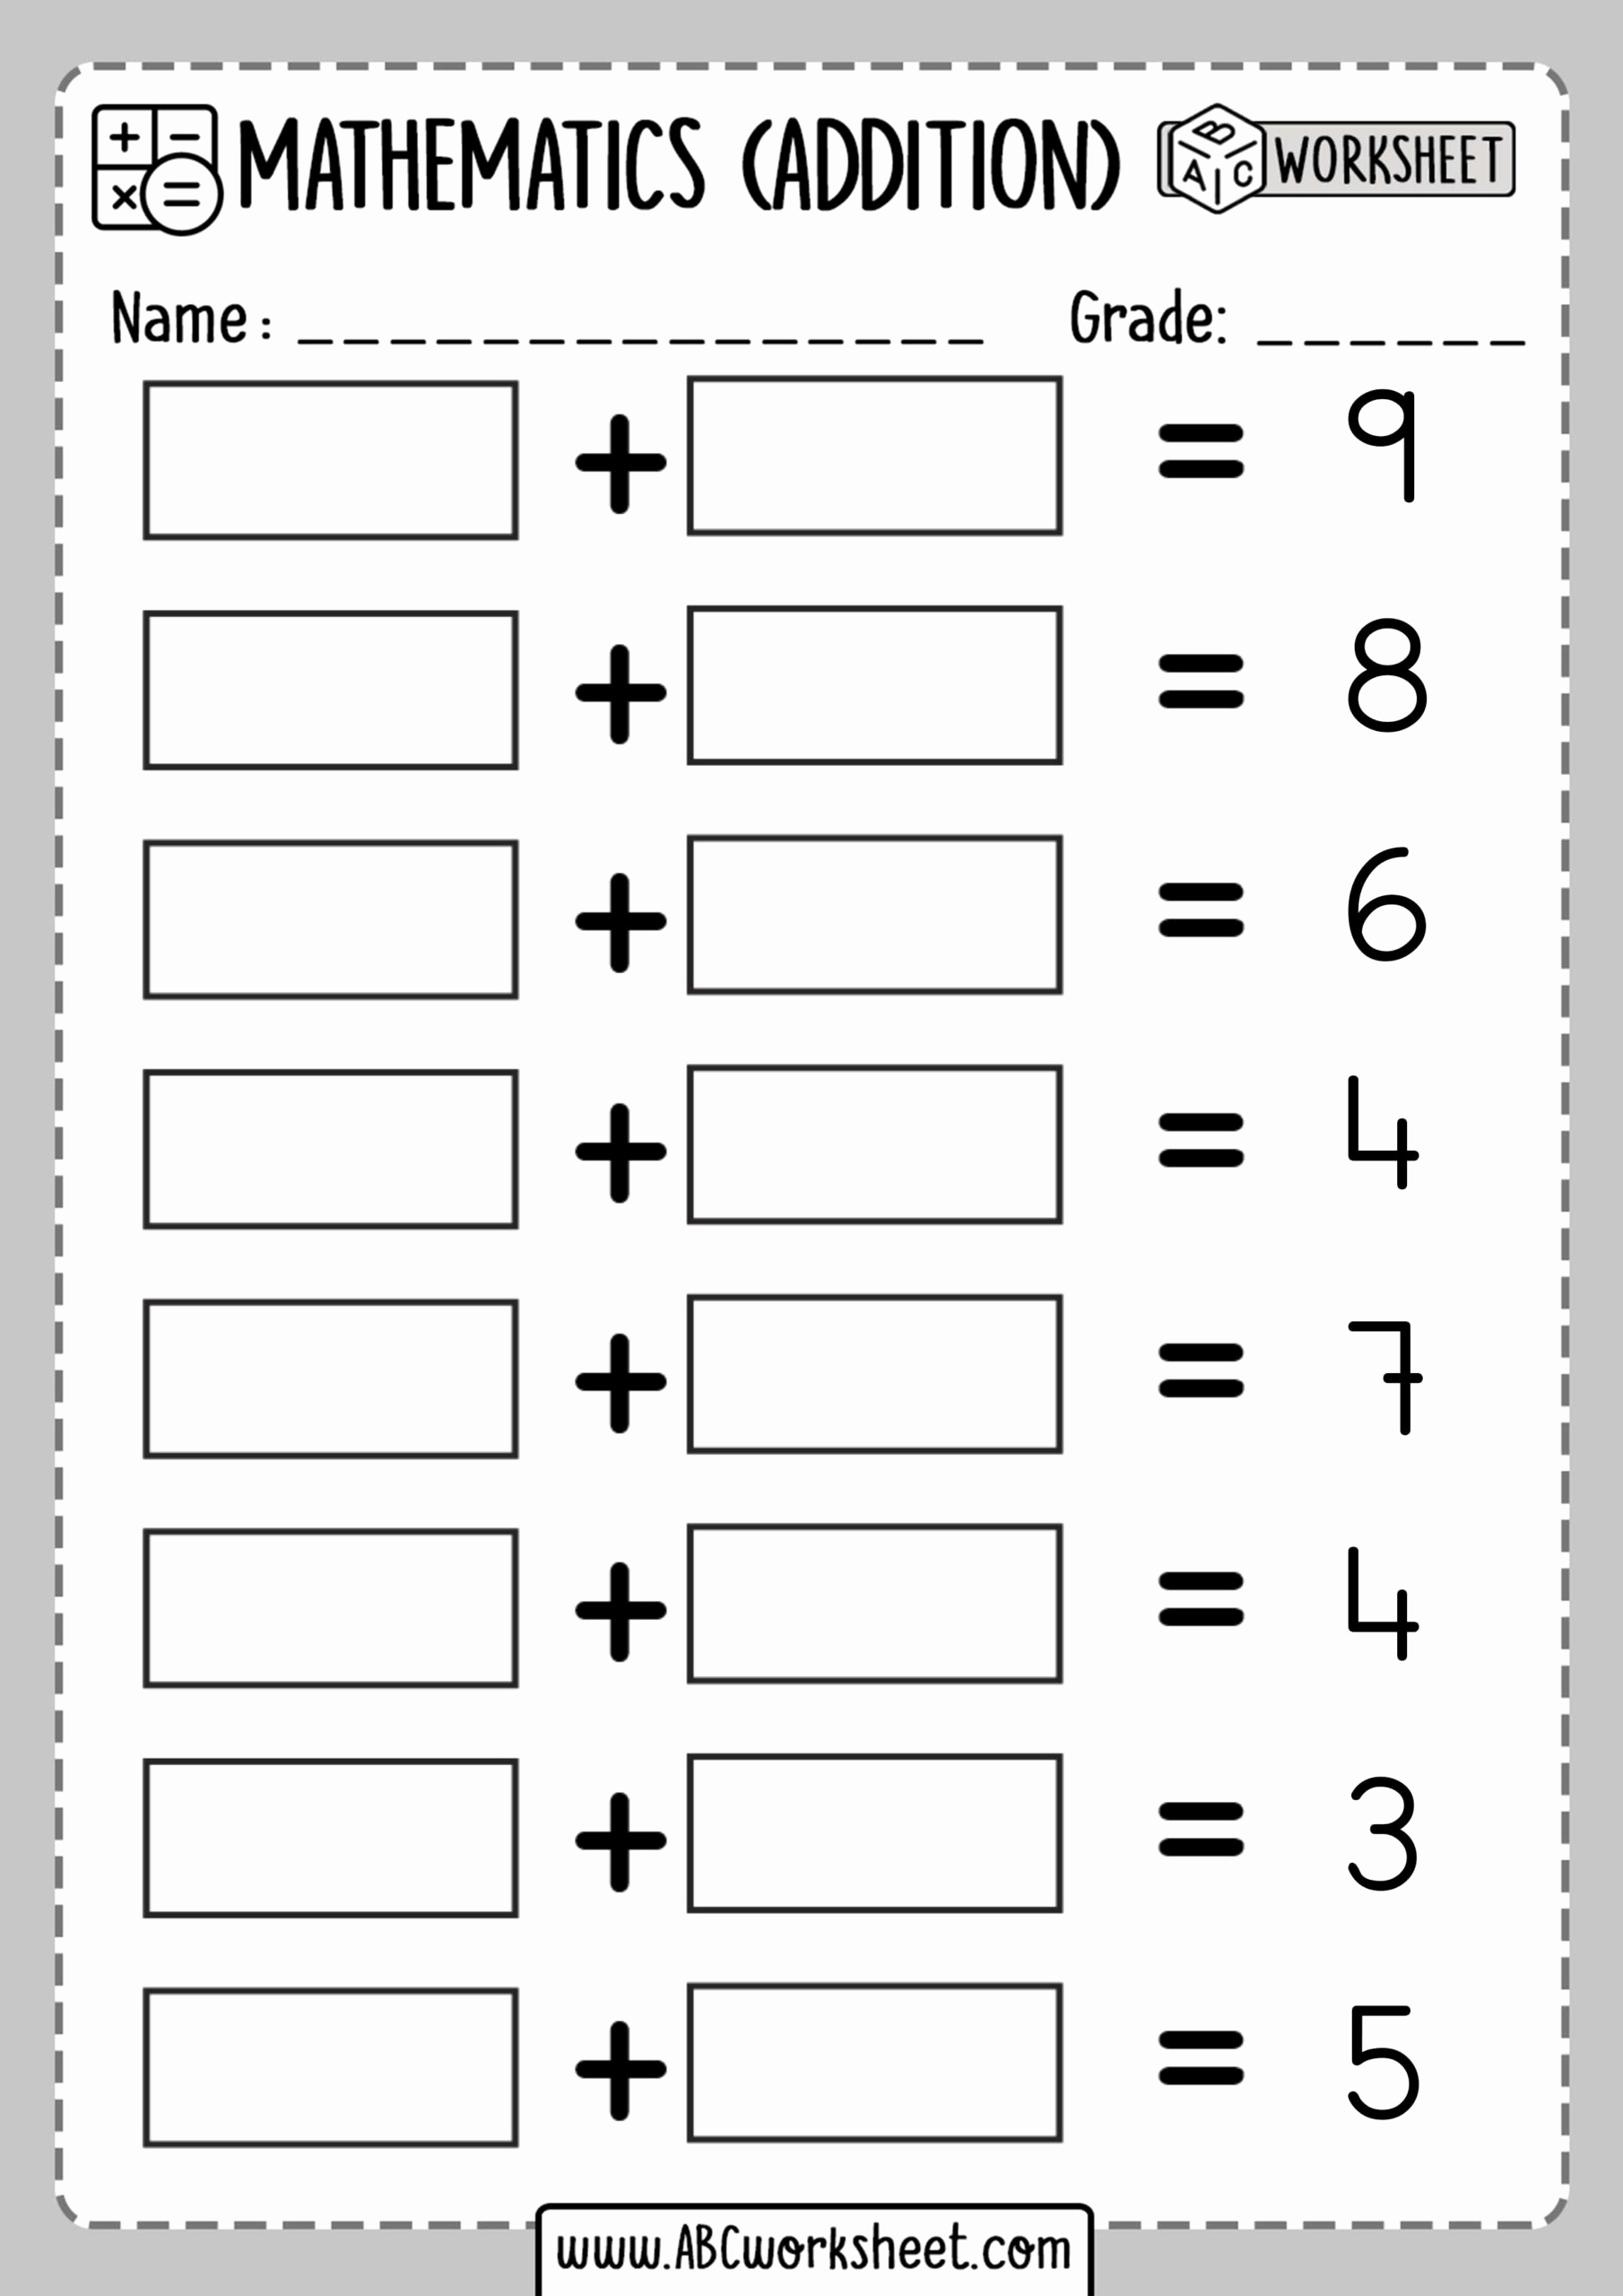 Missing Addend Worksheets Kindergarten Fresh Math Worsksheets